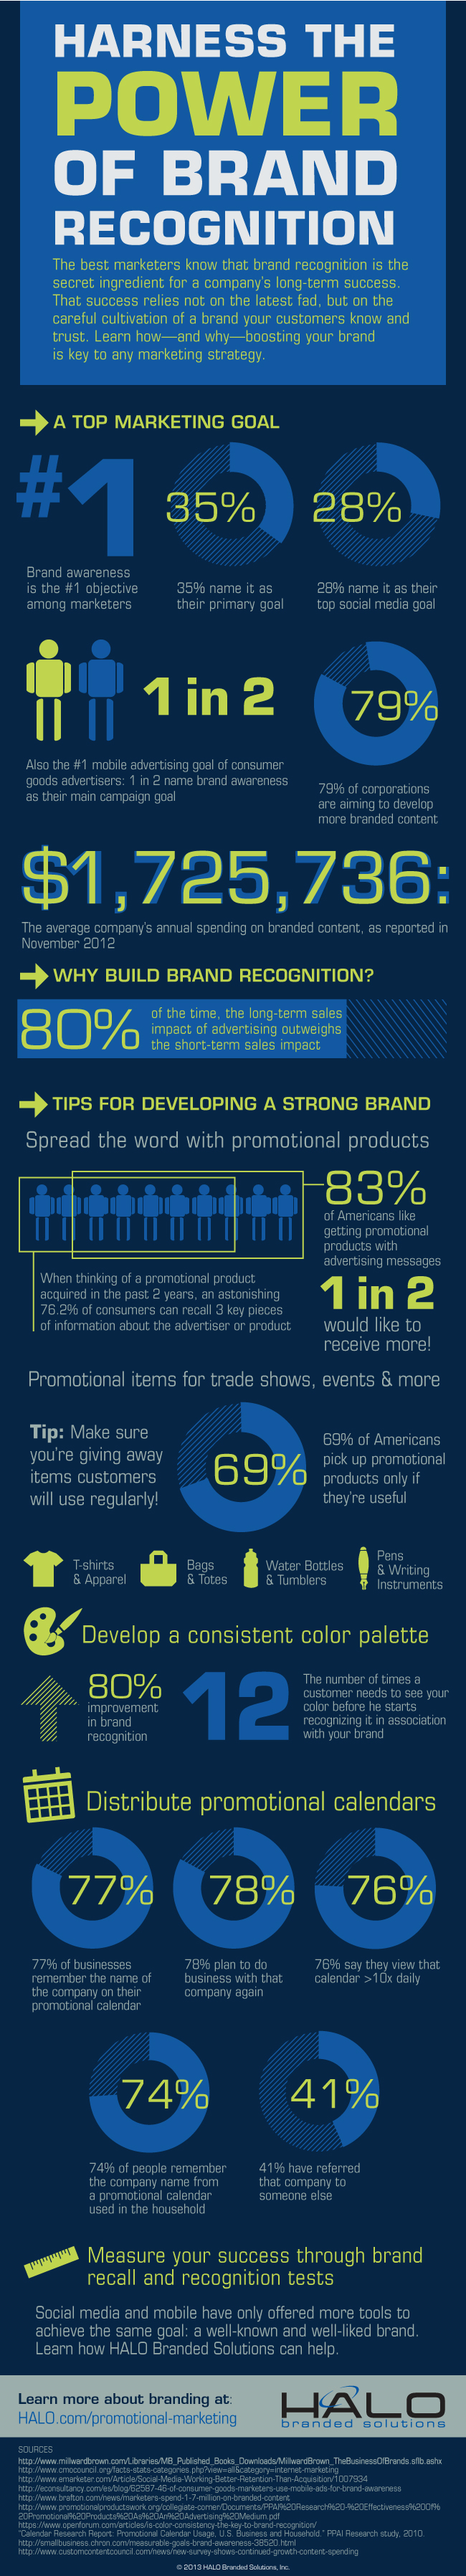 brand-recognition-infographic-halo